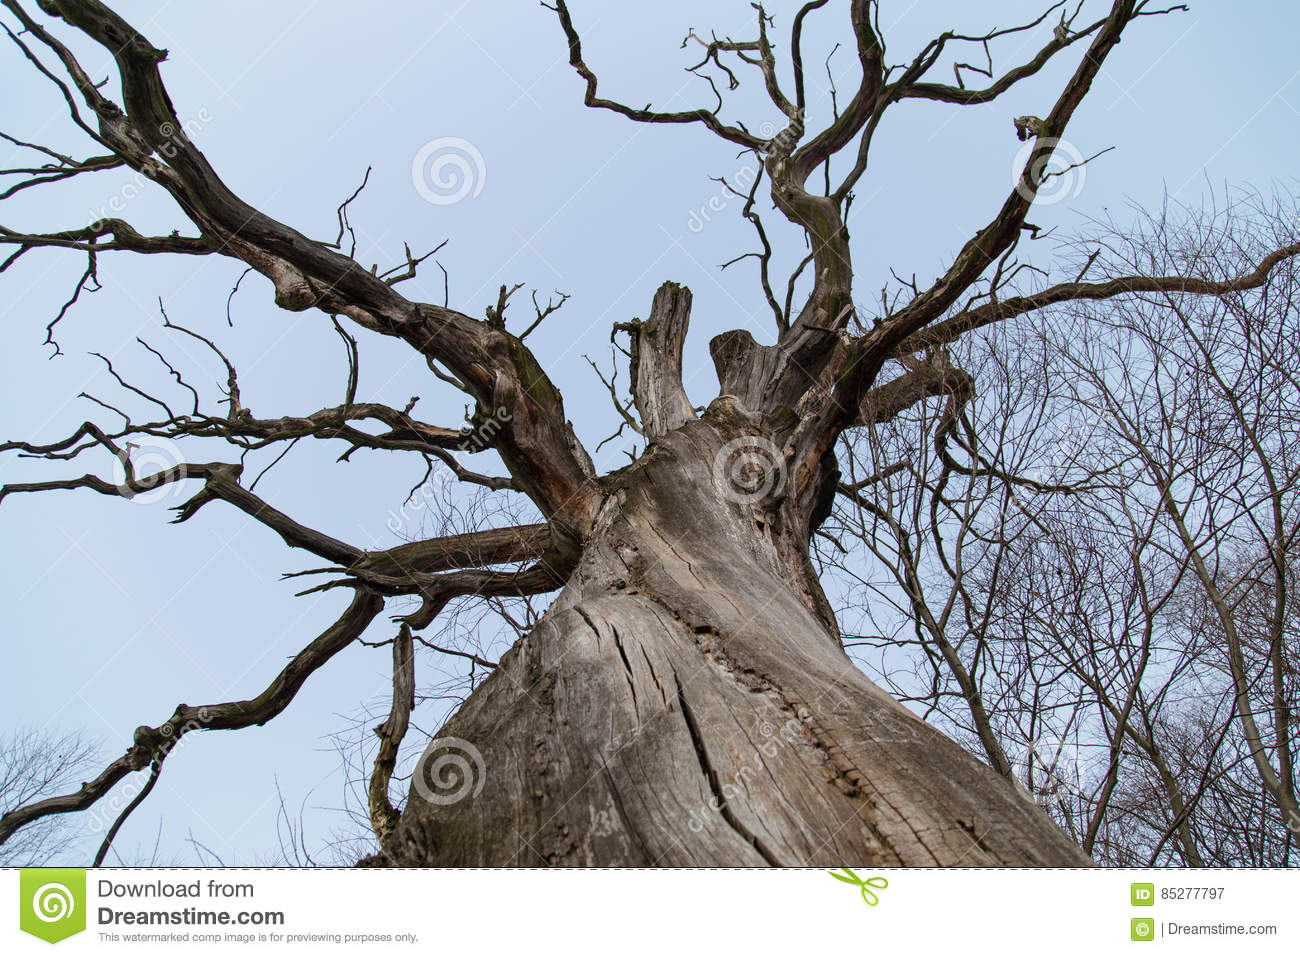 Branches of a dead giant tree